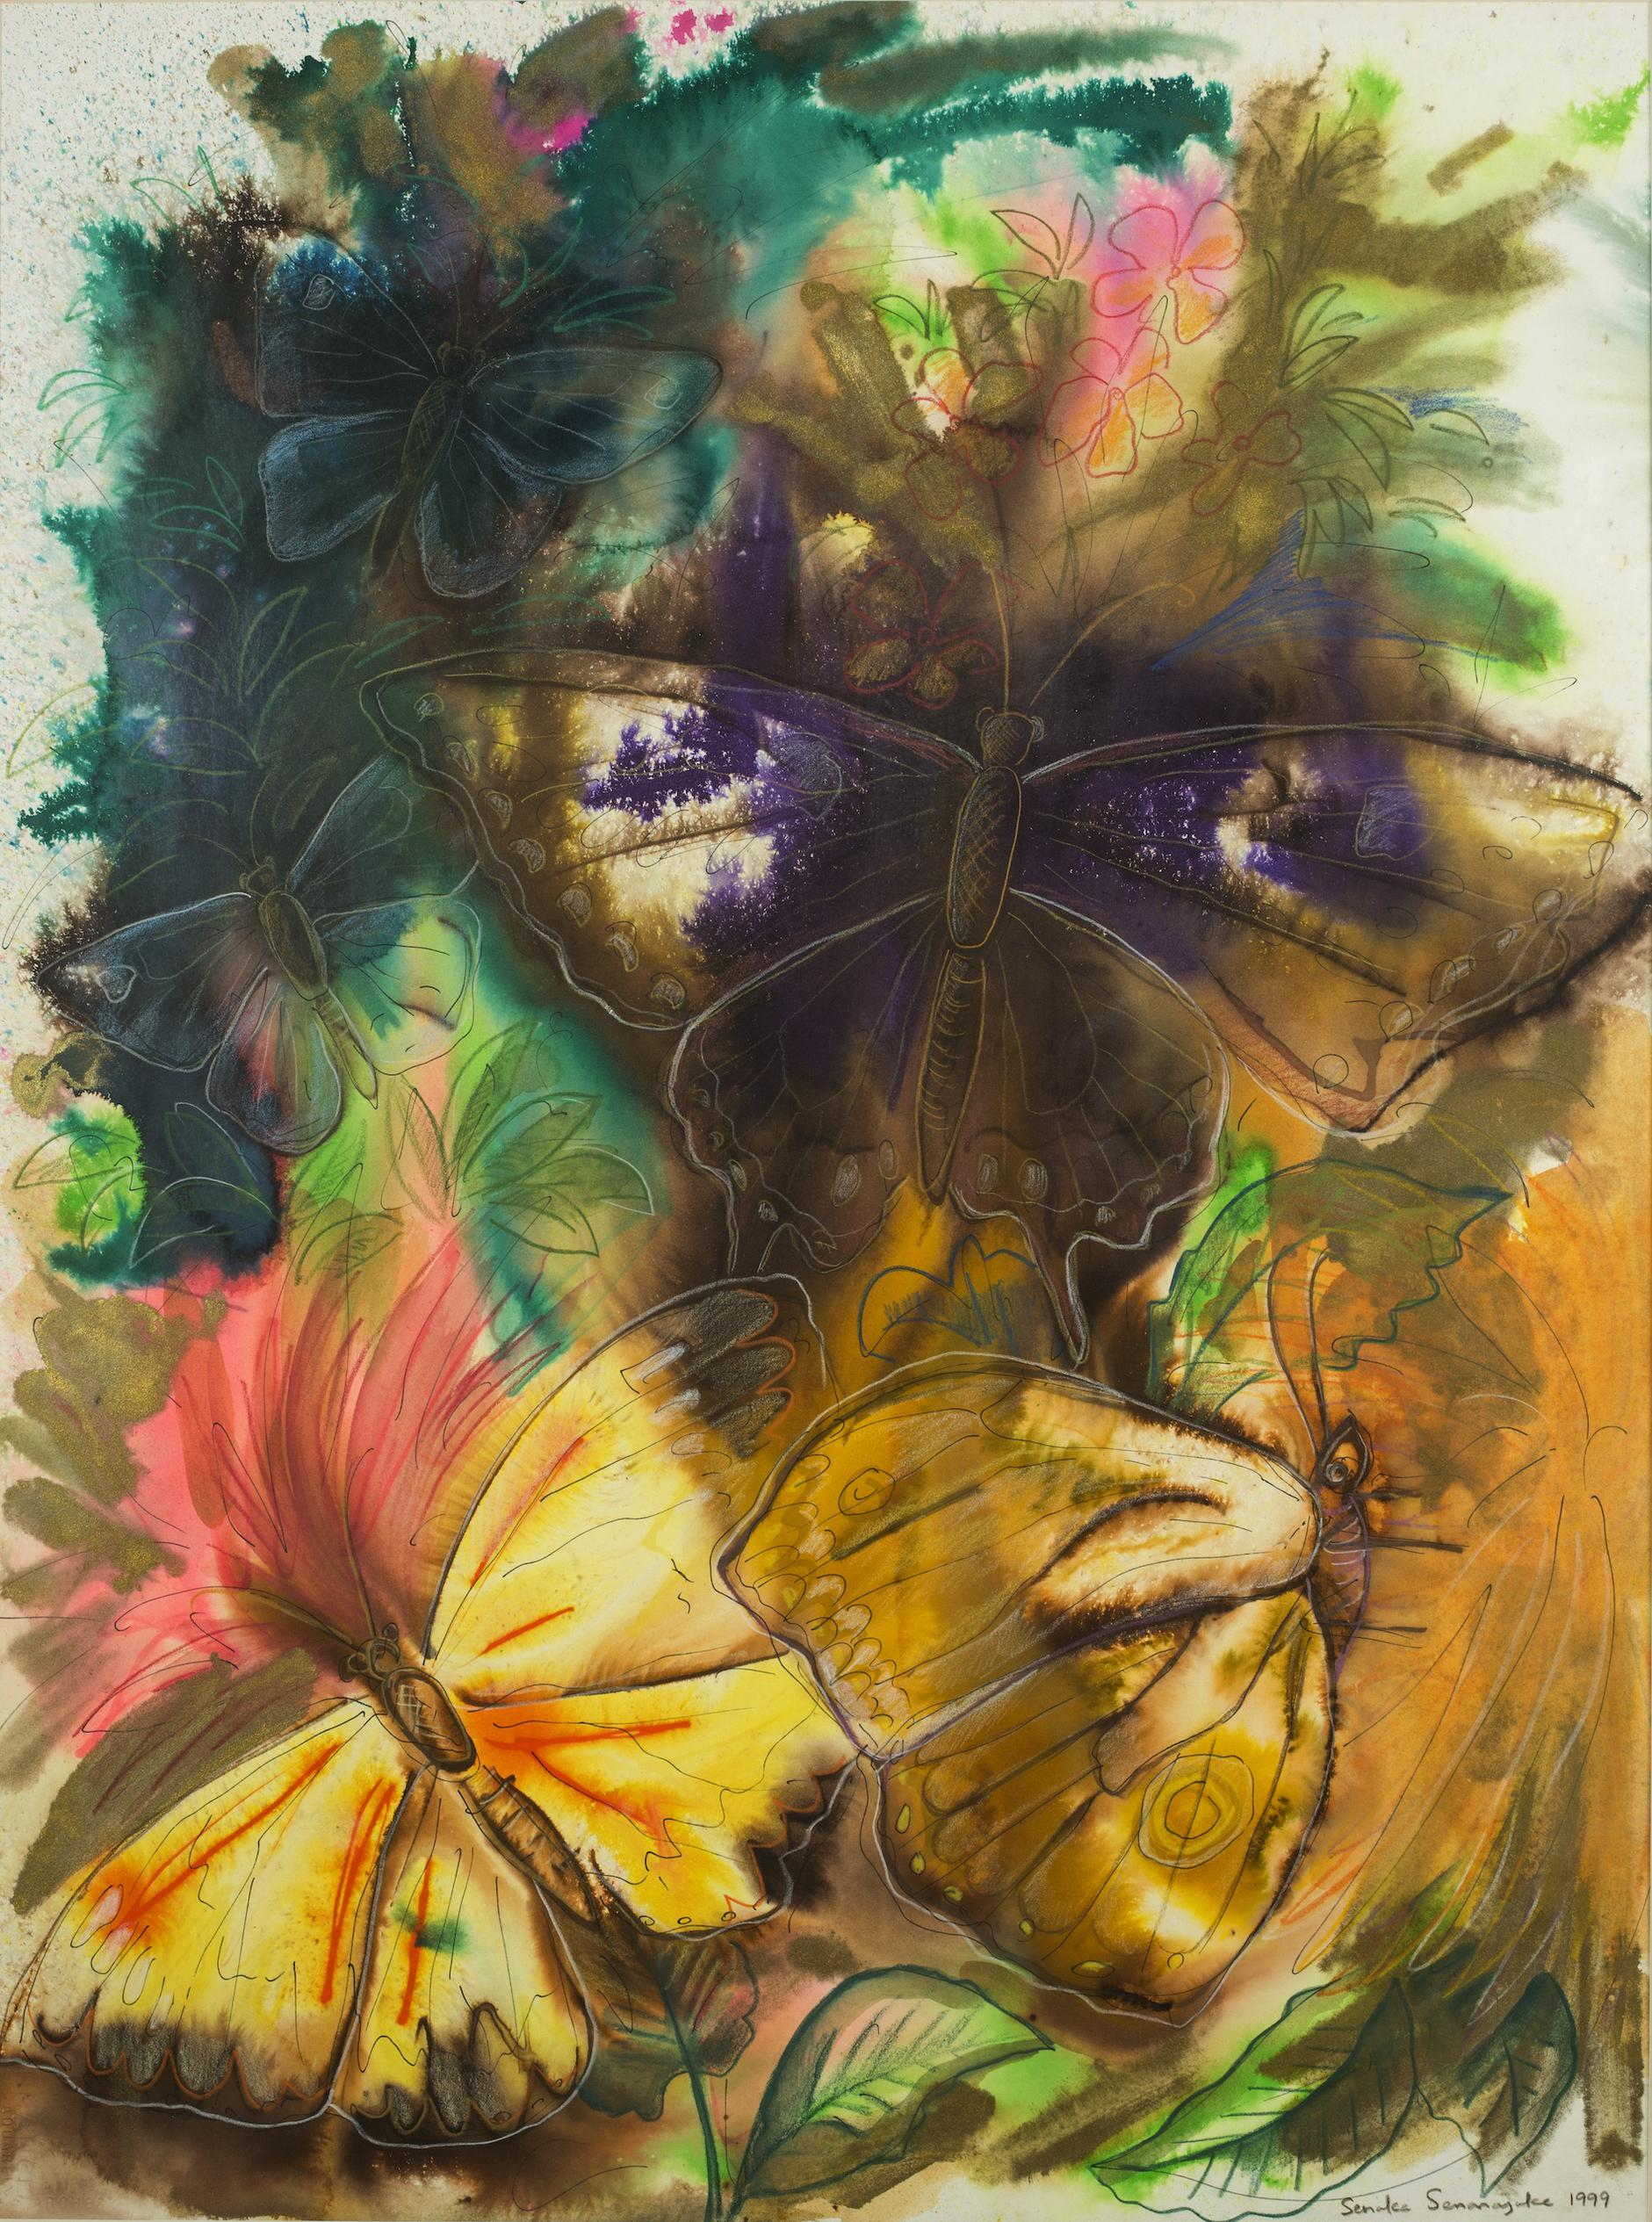 Senaka Senanayake-Untitled (Butterflies)-1999